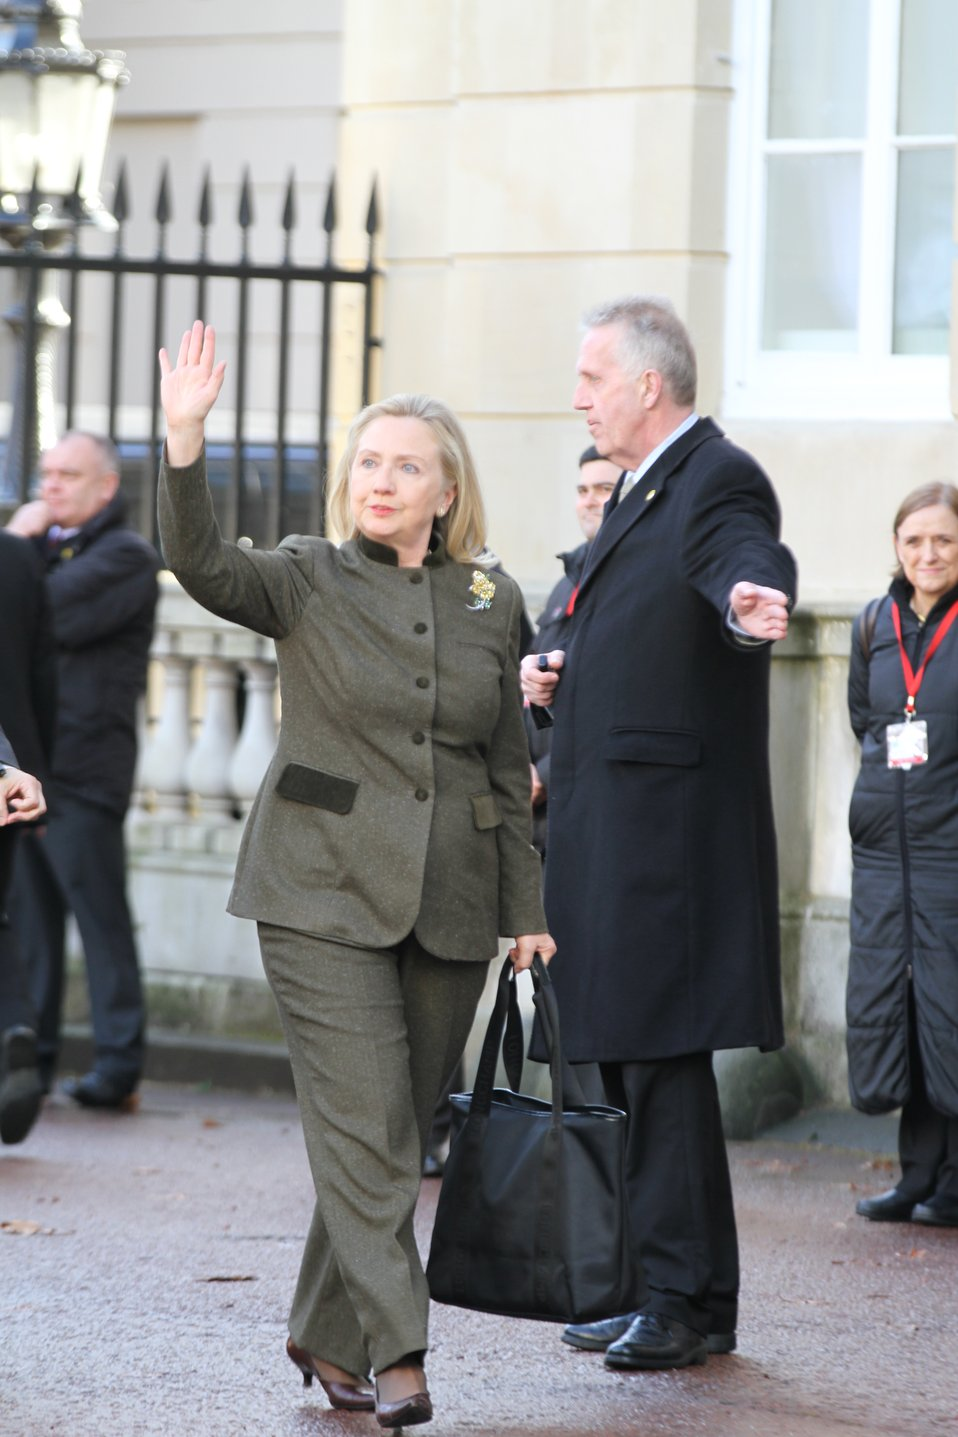 Secretary Clinton Waves